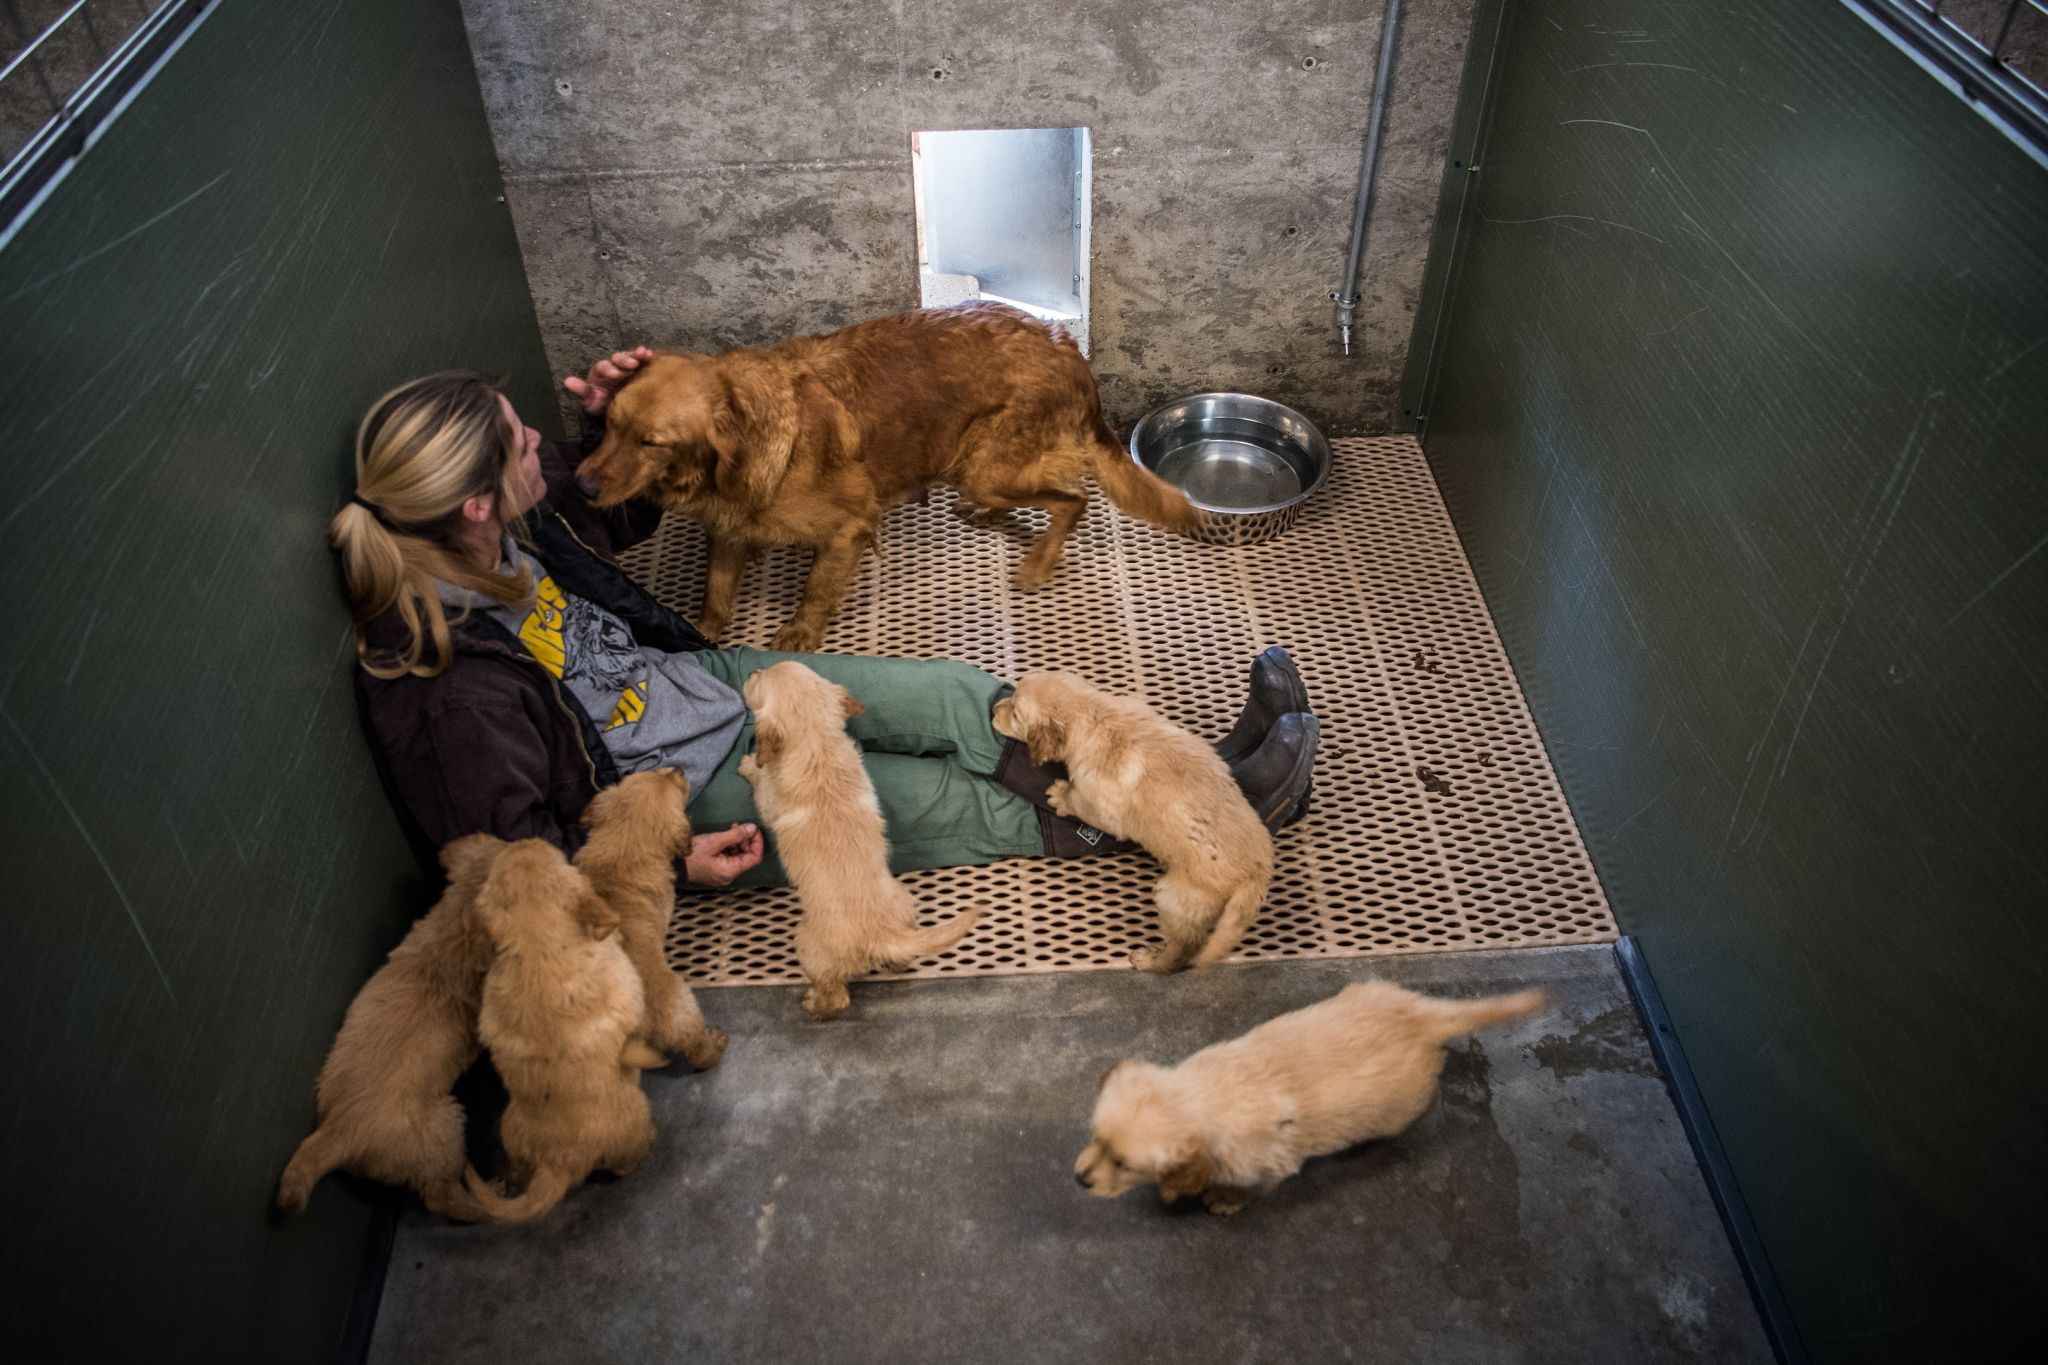 Dog rescuers, flush with donations, buy animals from the breeders